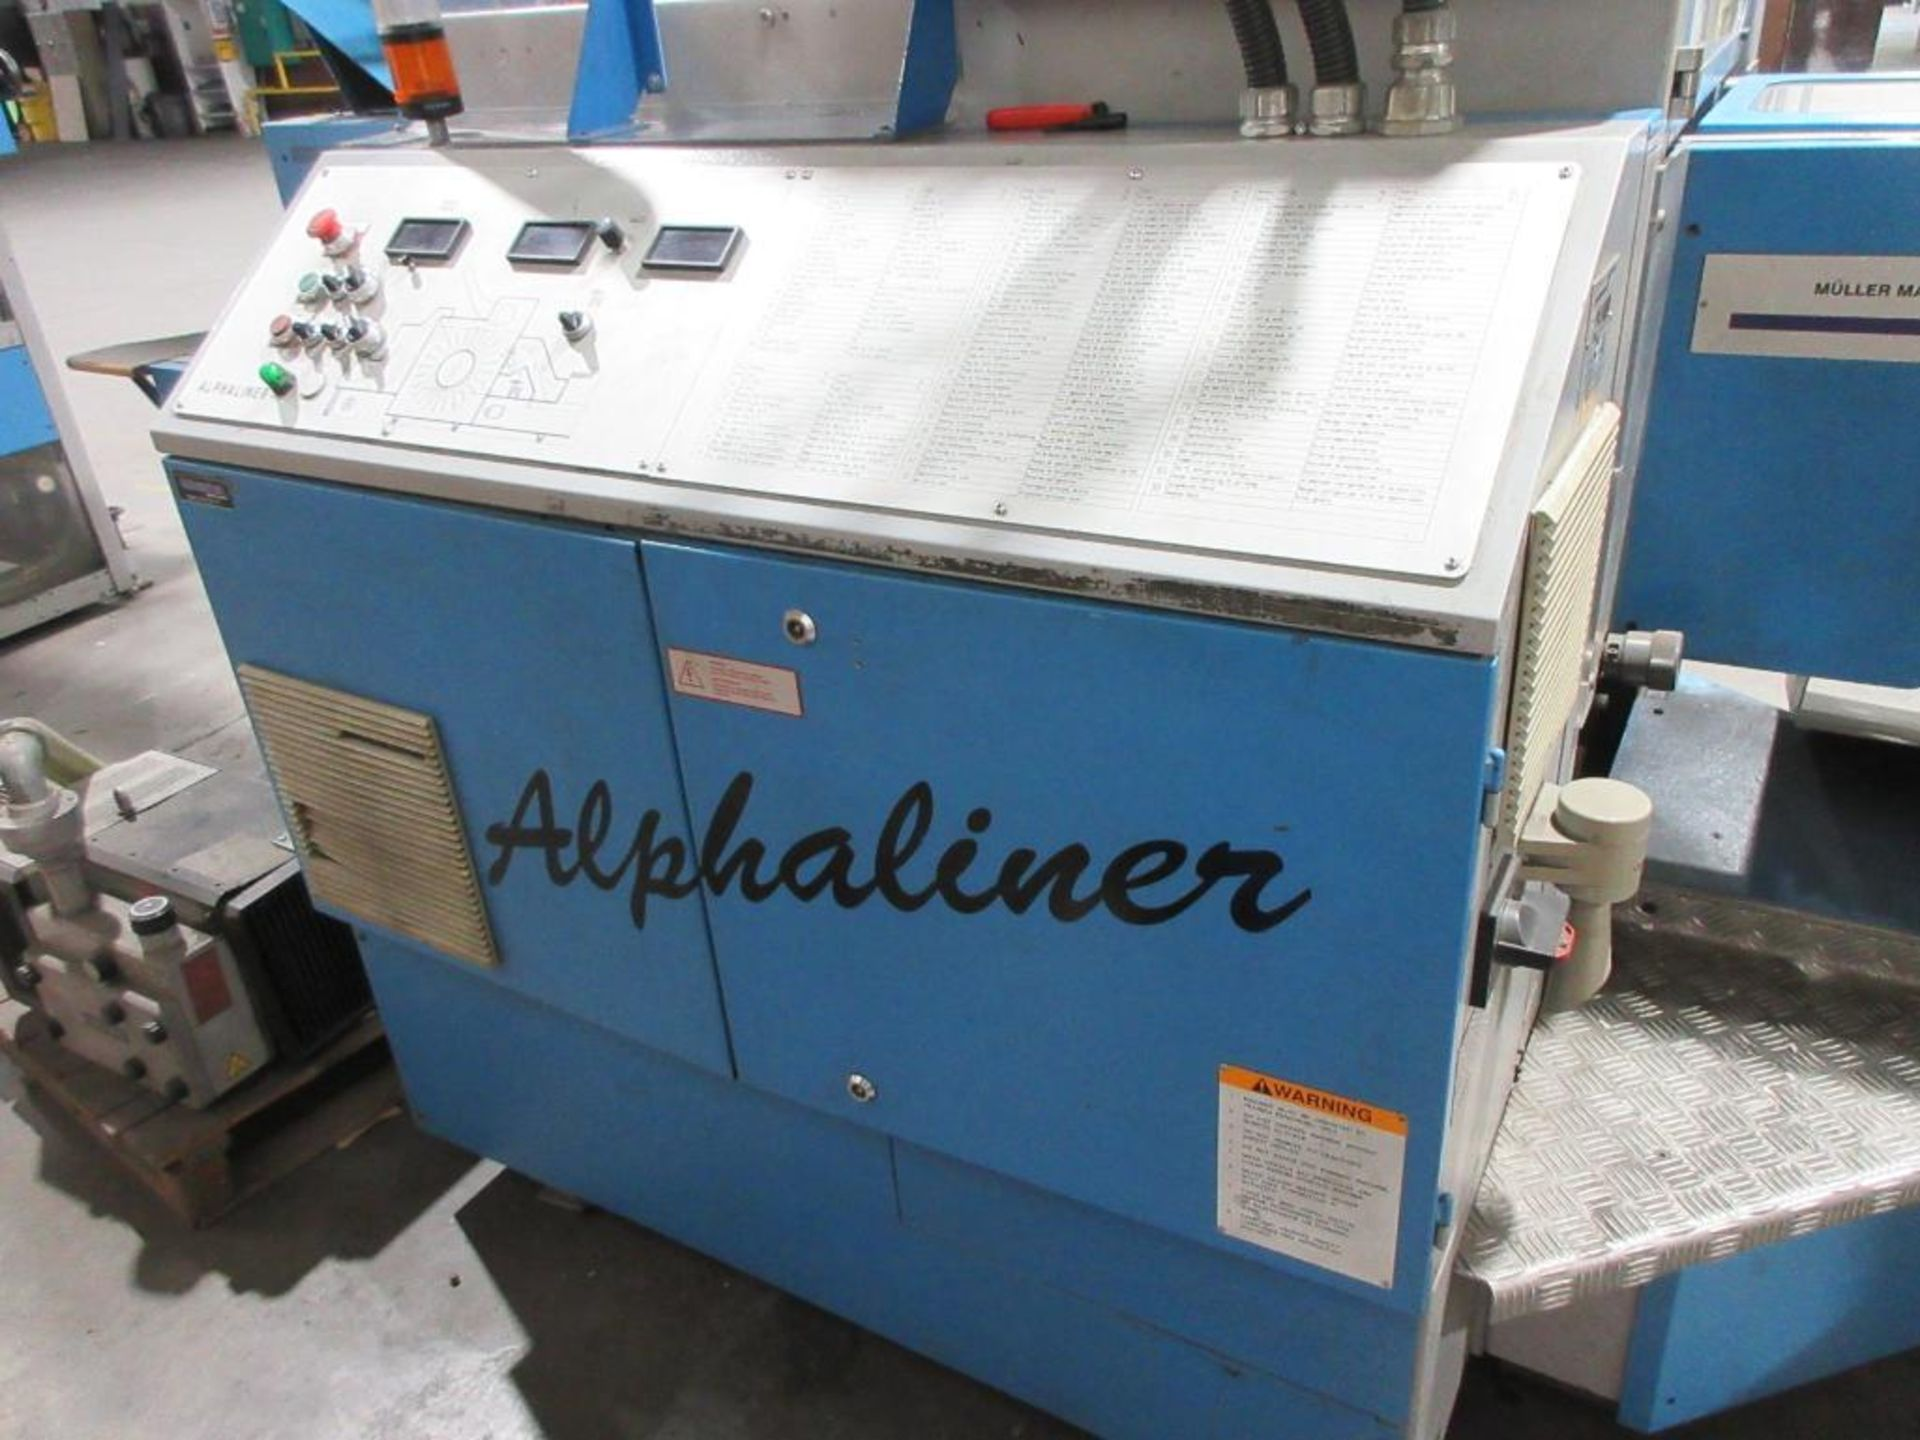 2005 Muller Martini Alphaliner inserter model 7500.0403, minimum pages 4 (tabloid, broadsheet, magaz - Image 7 of 15